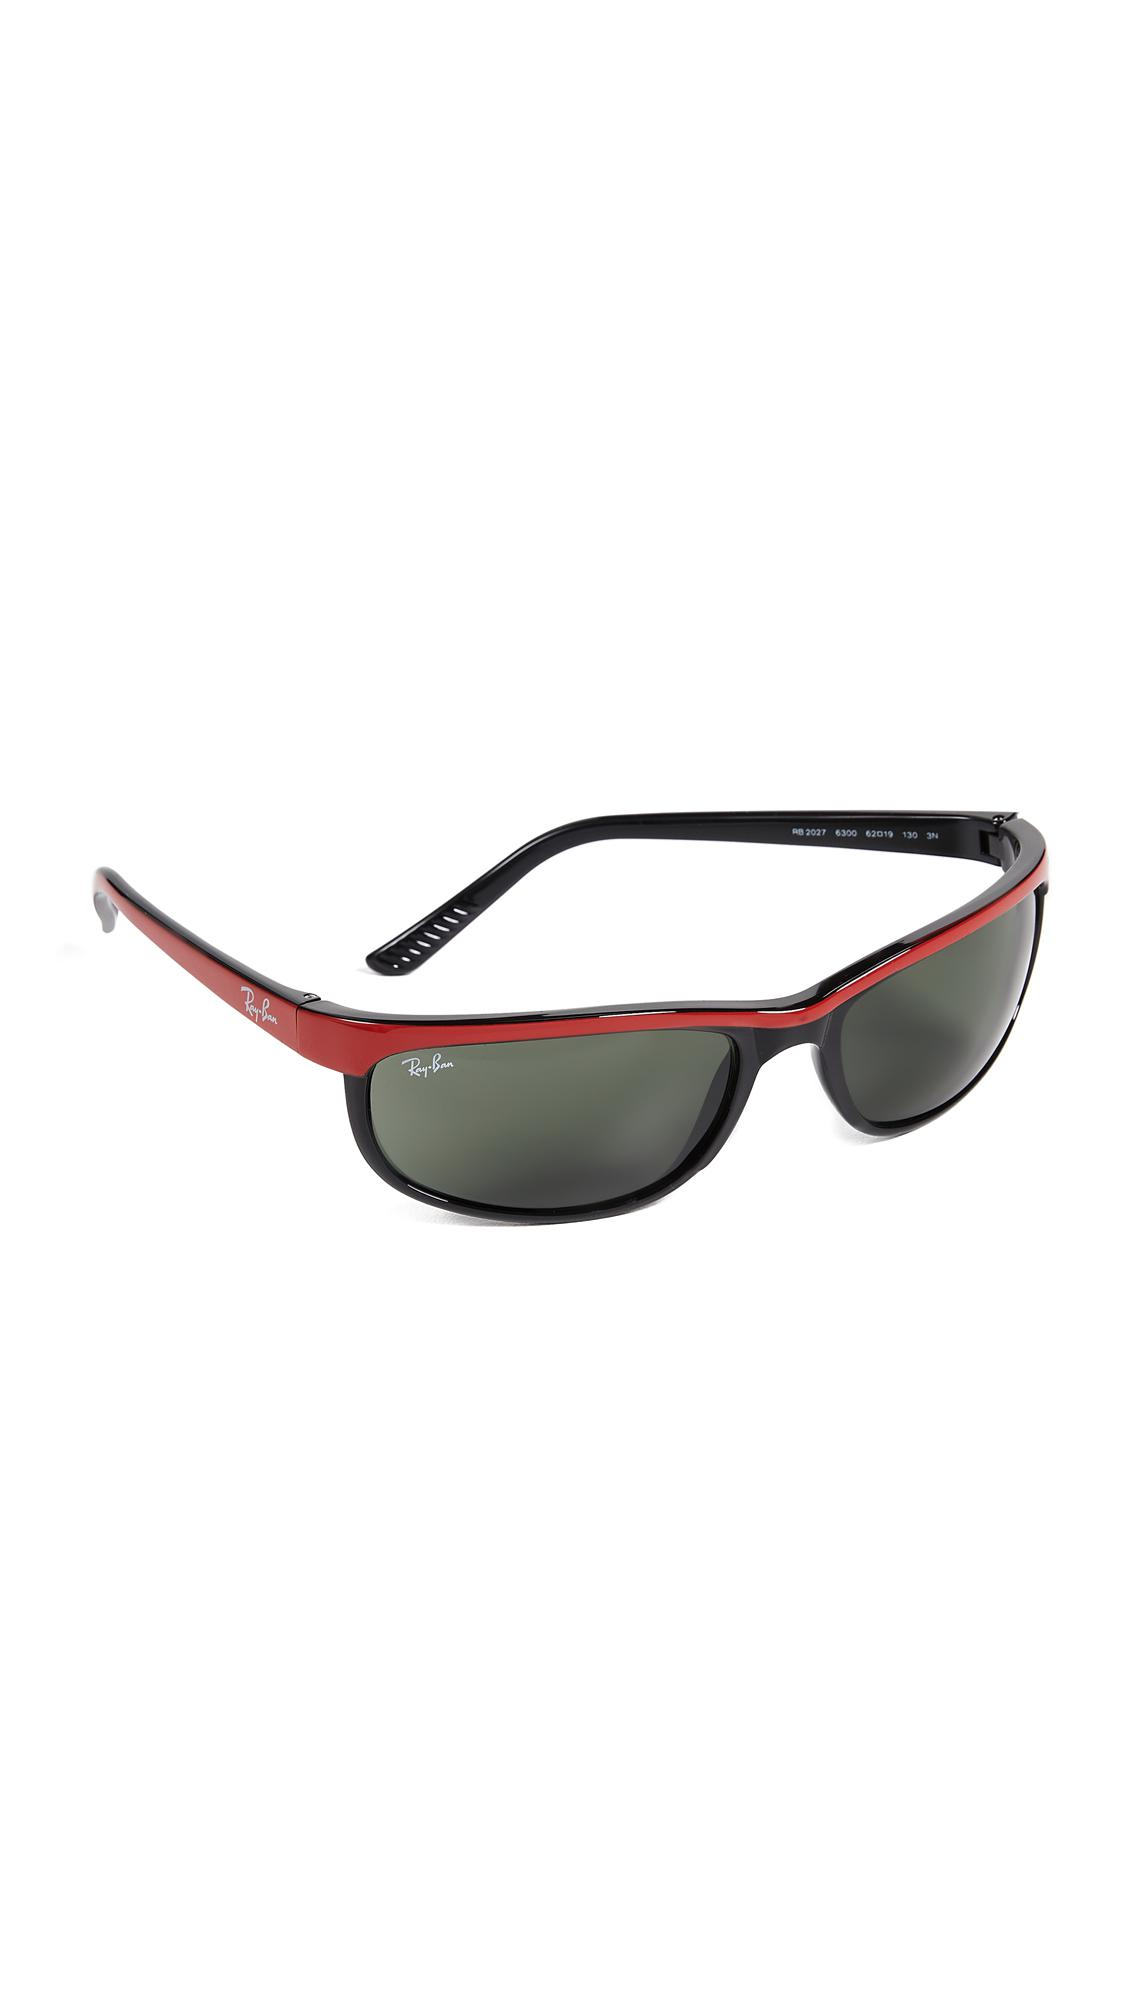 859f45e096 Ray Bans Predator 2 « One More Soul